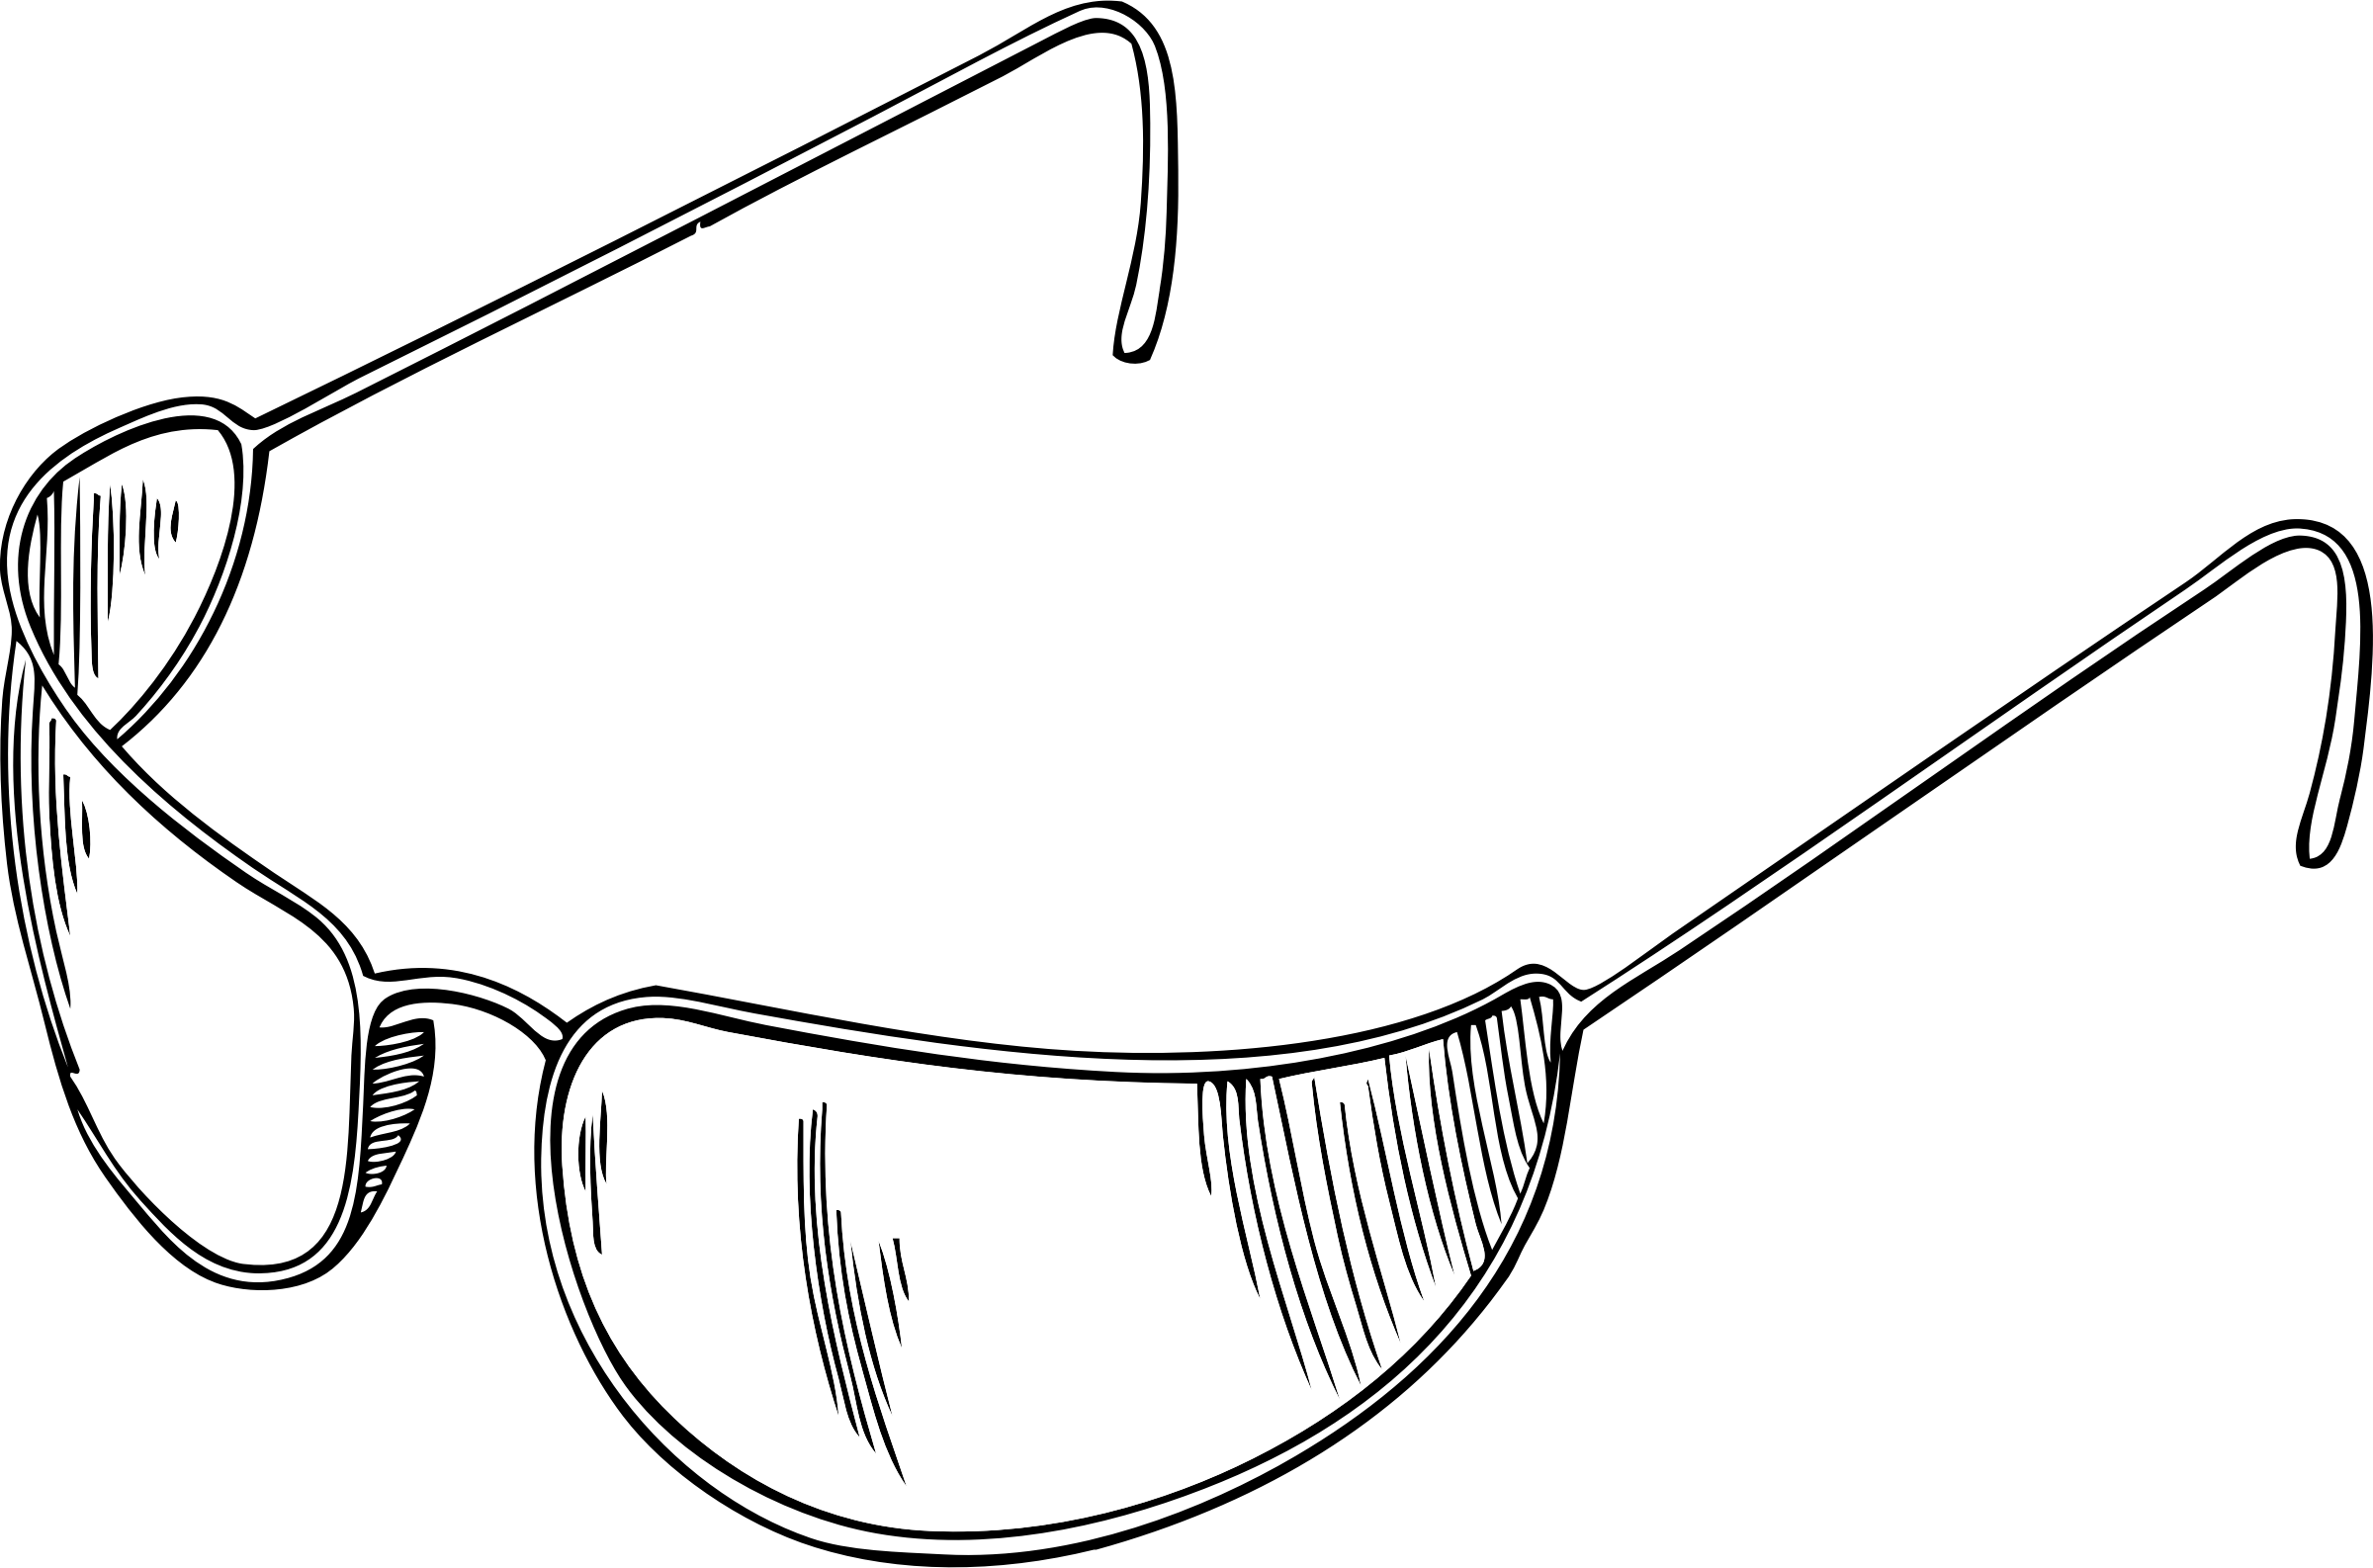 Sun with sunglasses clipart black and white svg royalty free Clipart - eyeglasses svg royalty free